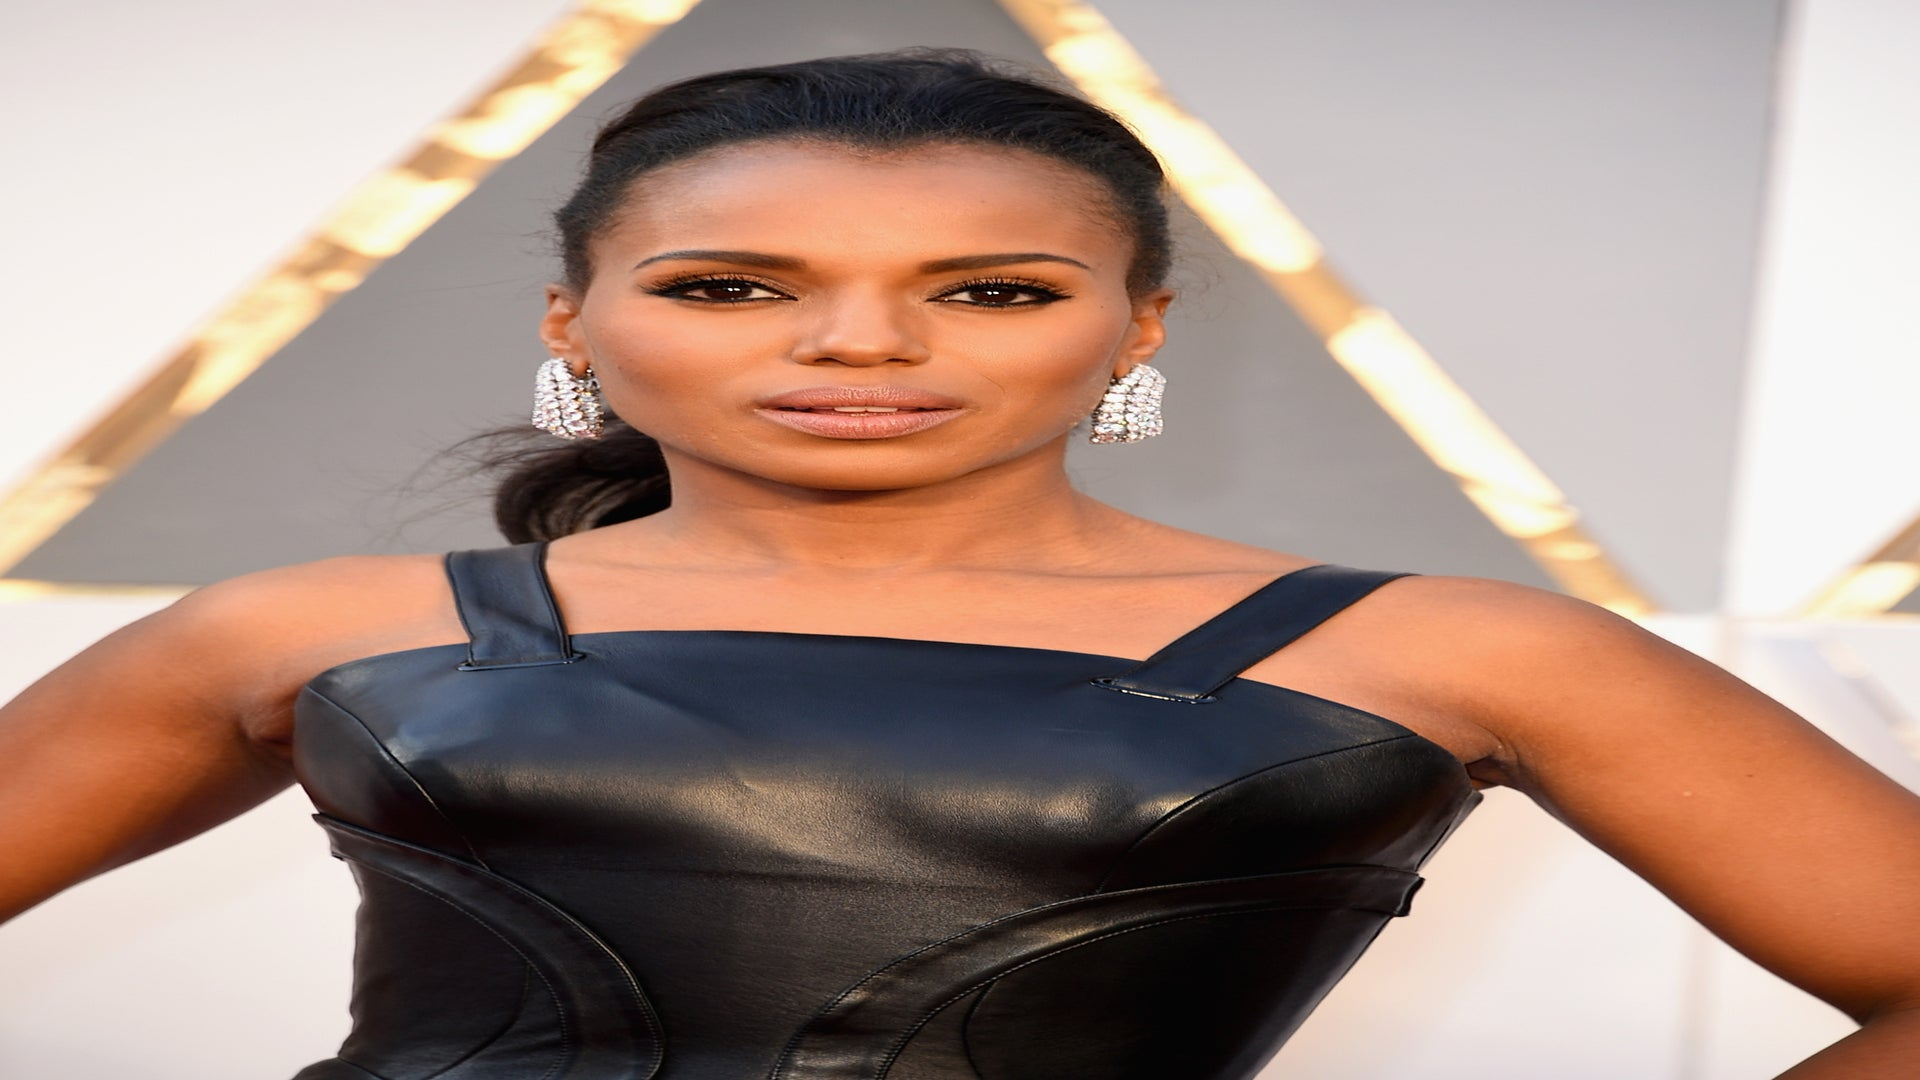 Kerry Washington is Taking a Stand Against Domestic Violence